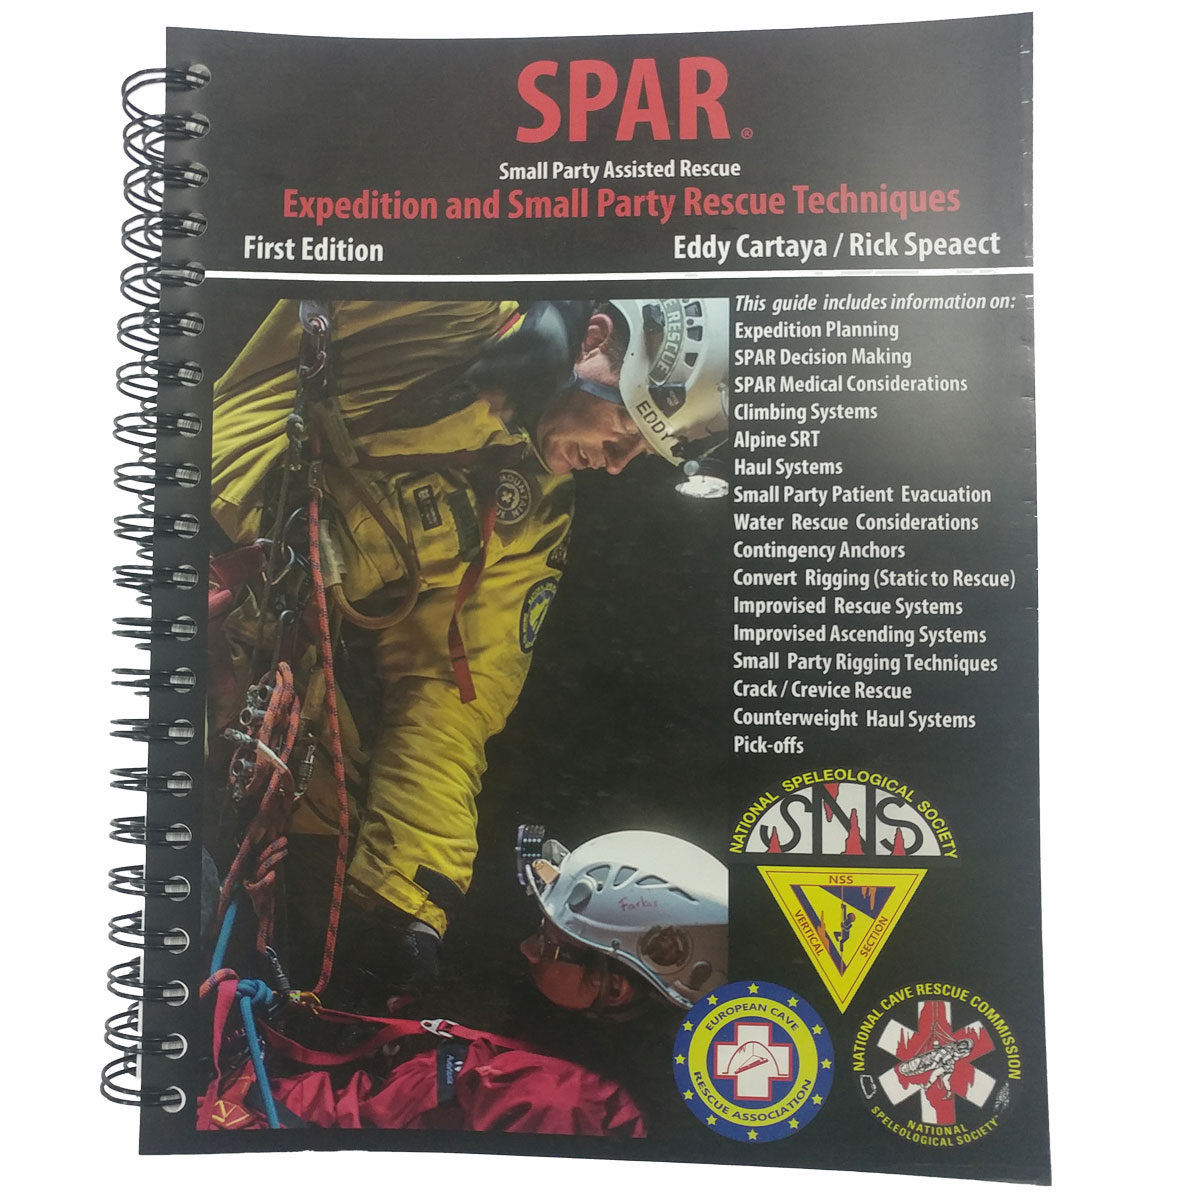 SPAR - Expedition and Small Party Rescue Manual photo